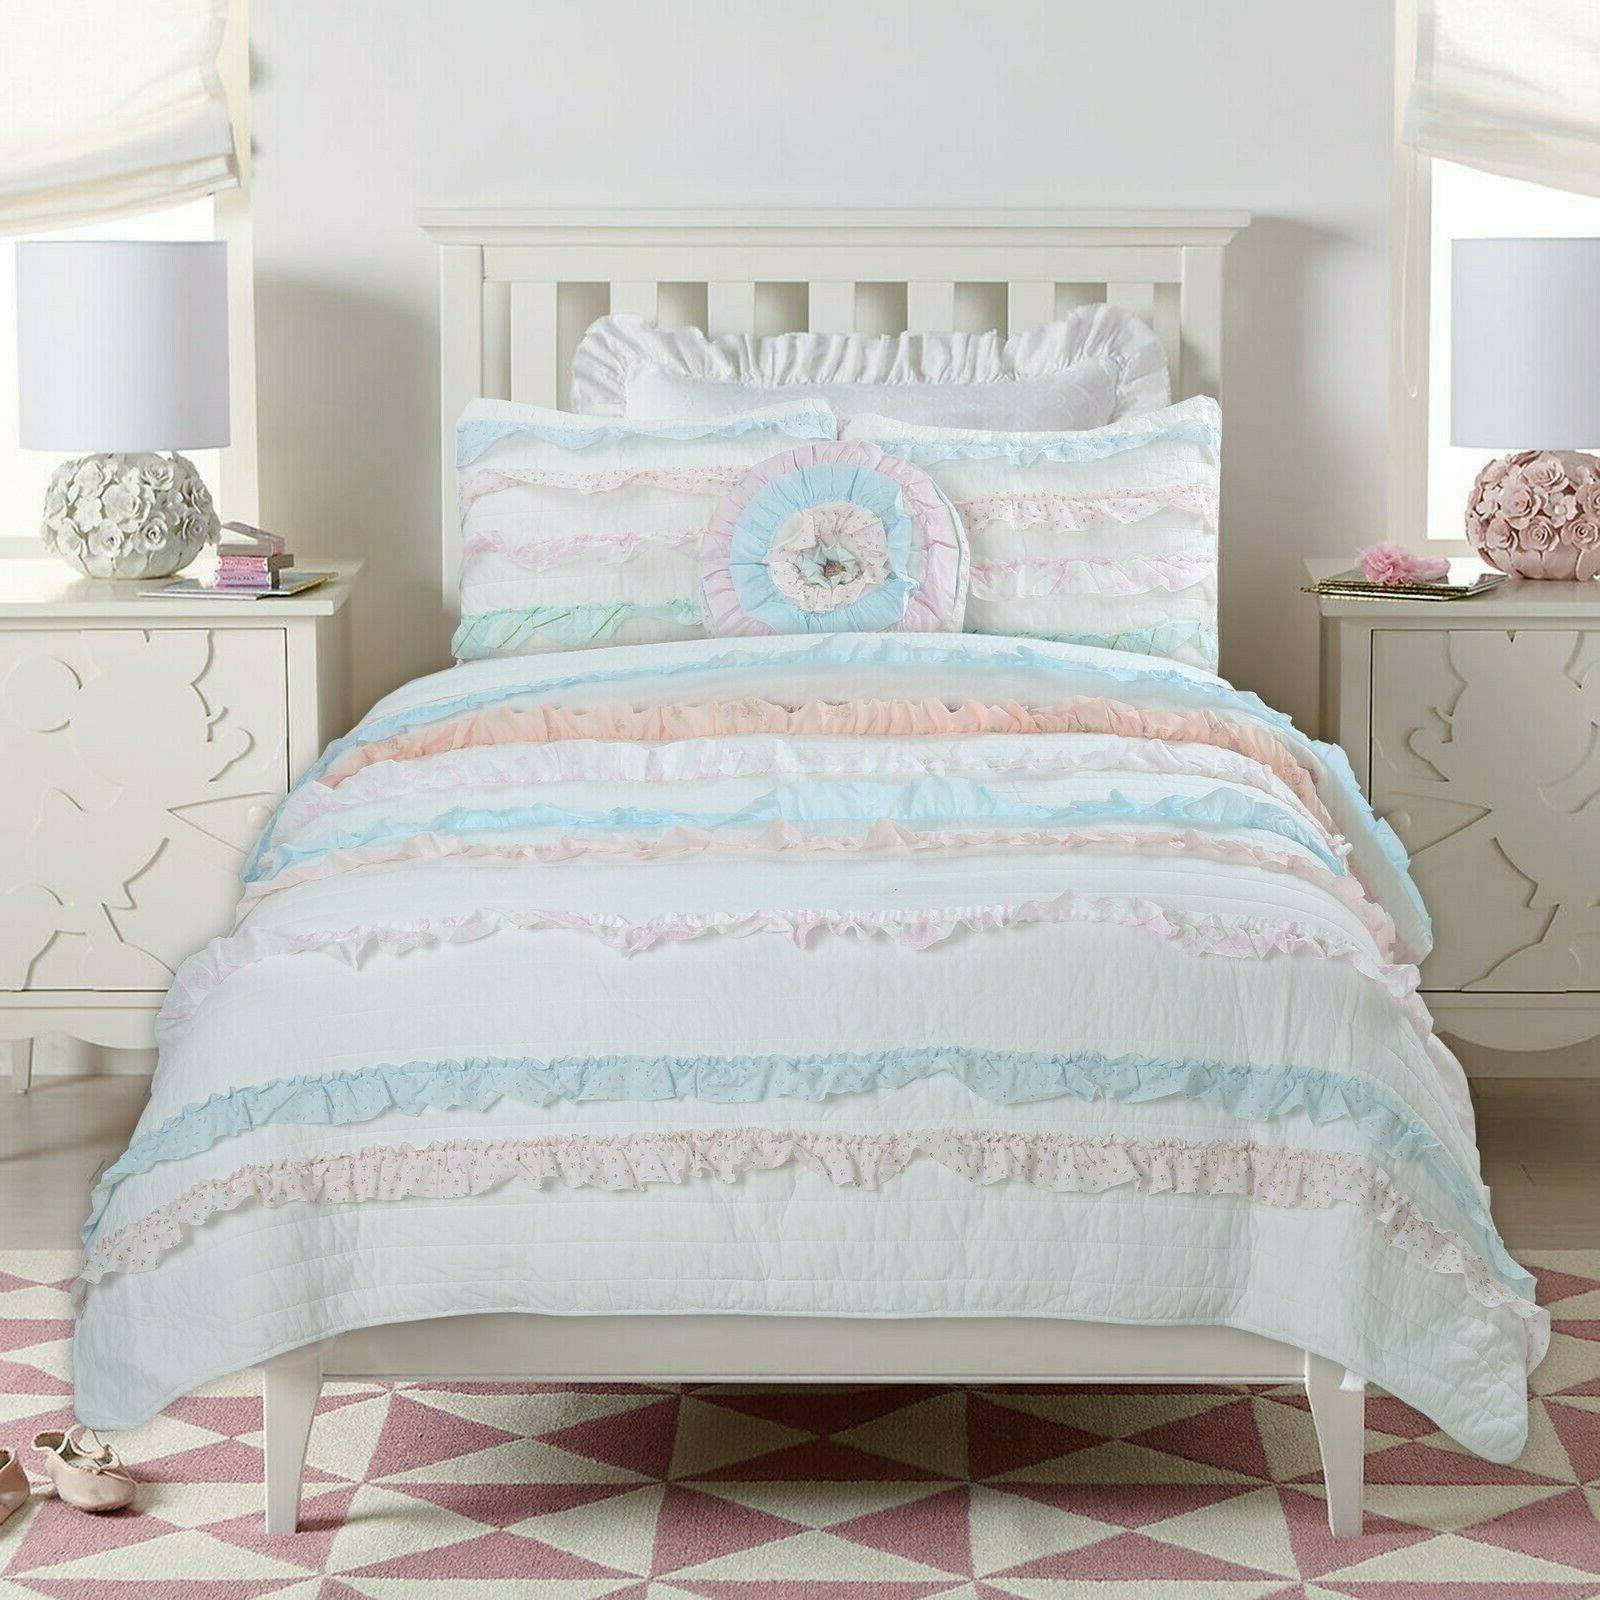 Devers Ruffle Lace 100%Cotton Coverlet